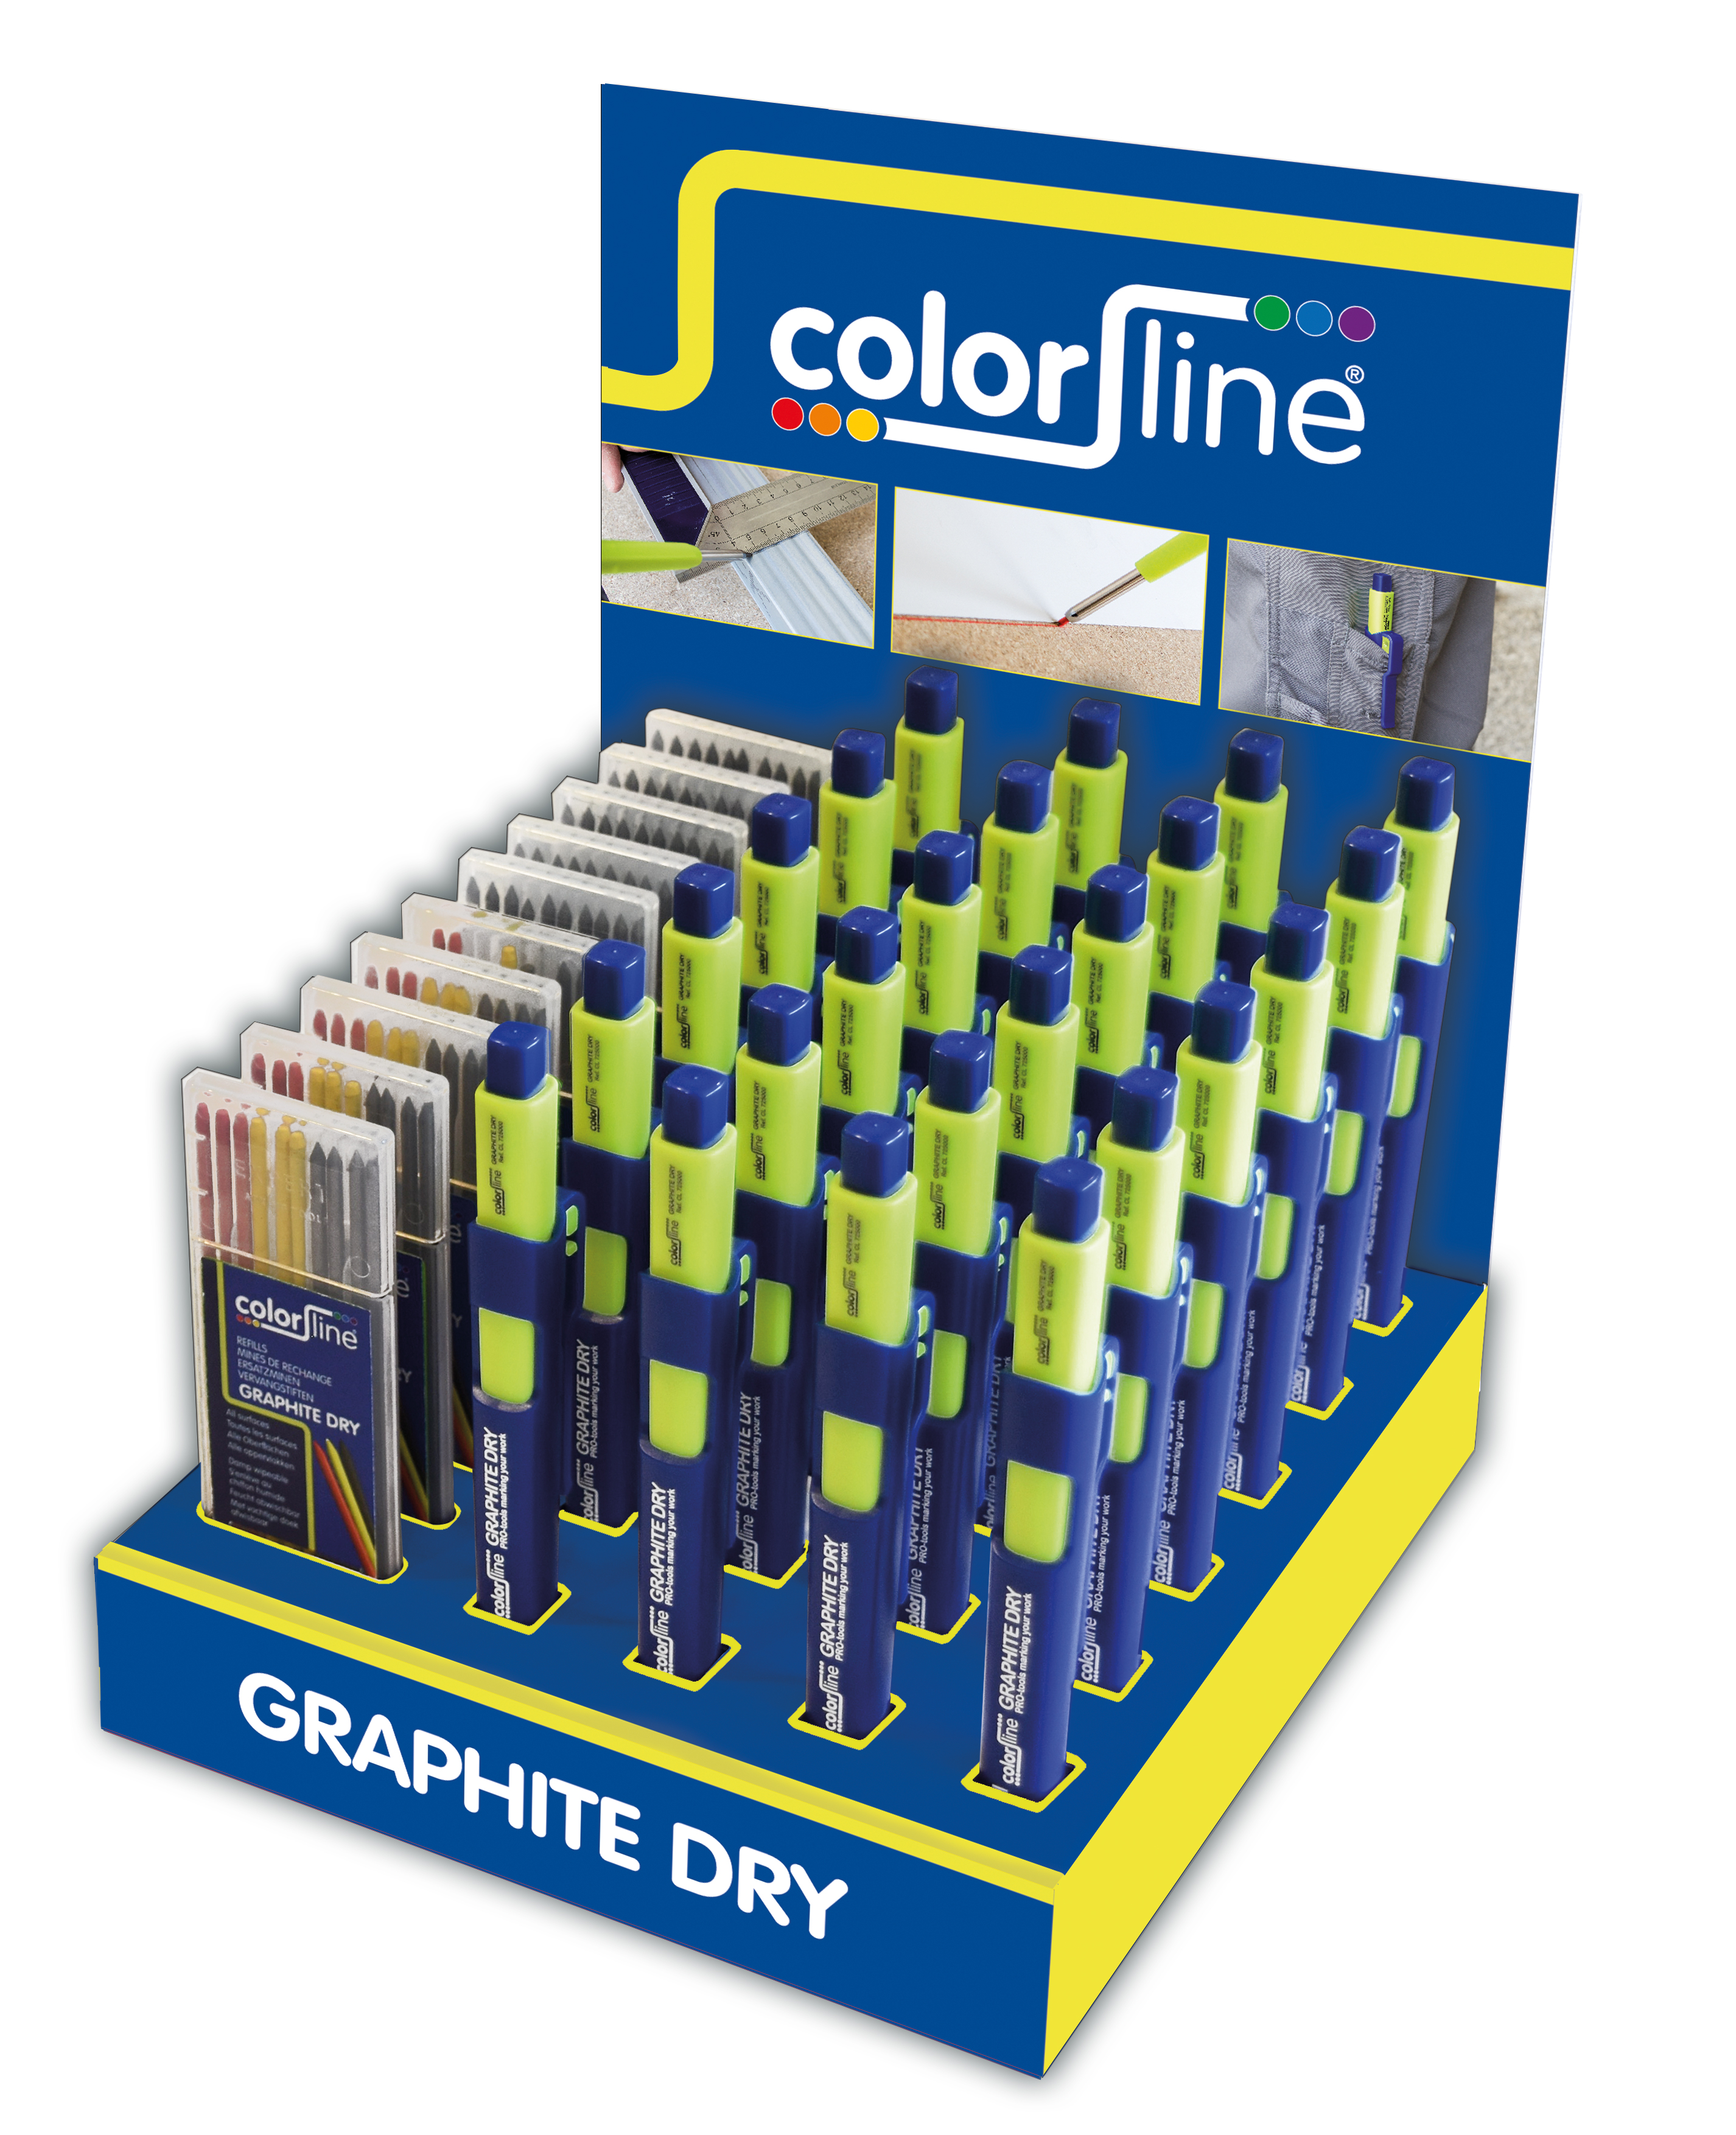 Assortiment de porte-mine et mines de rechange en display: 24 X Crayon GRAPHITE DRY + + 5x10 GR + 5x10 mix mines graphite